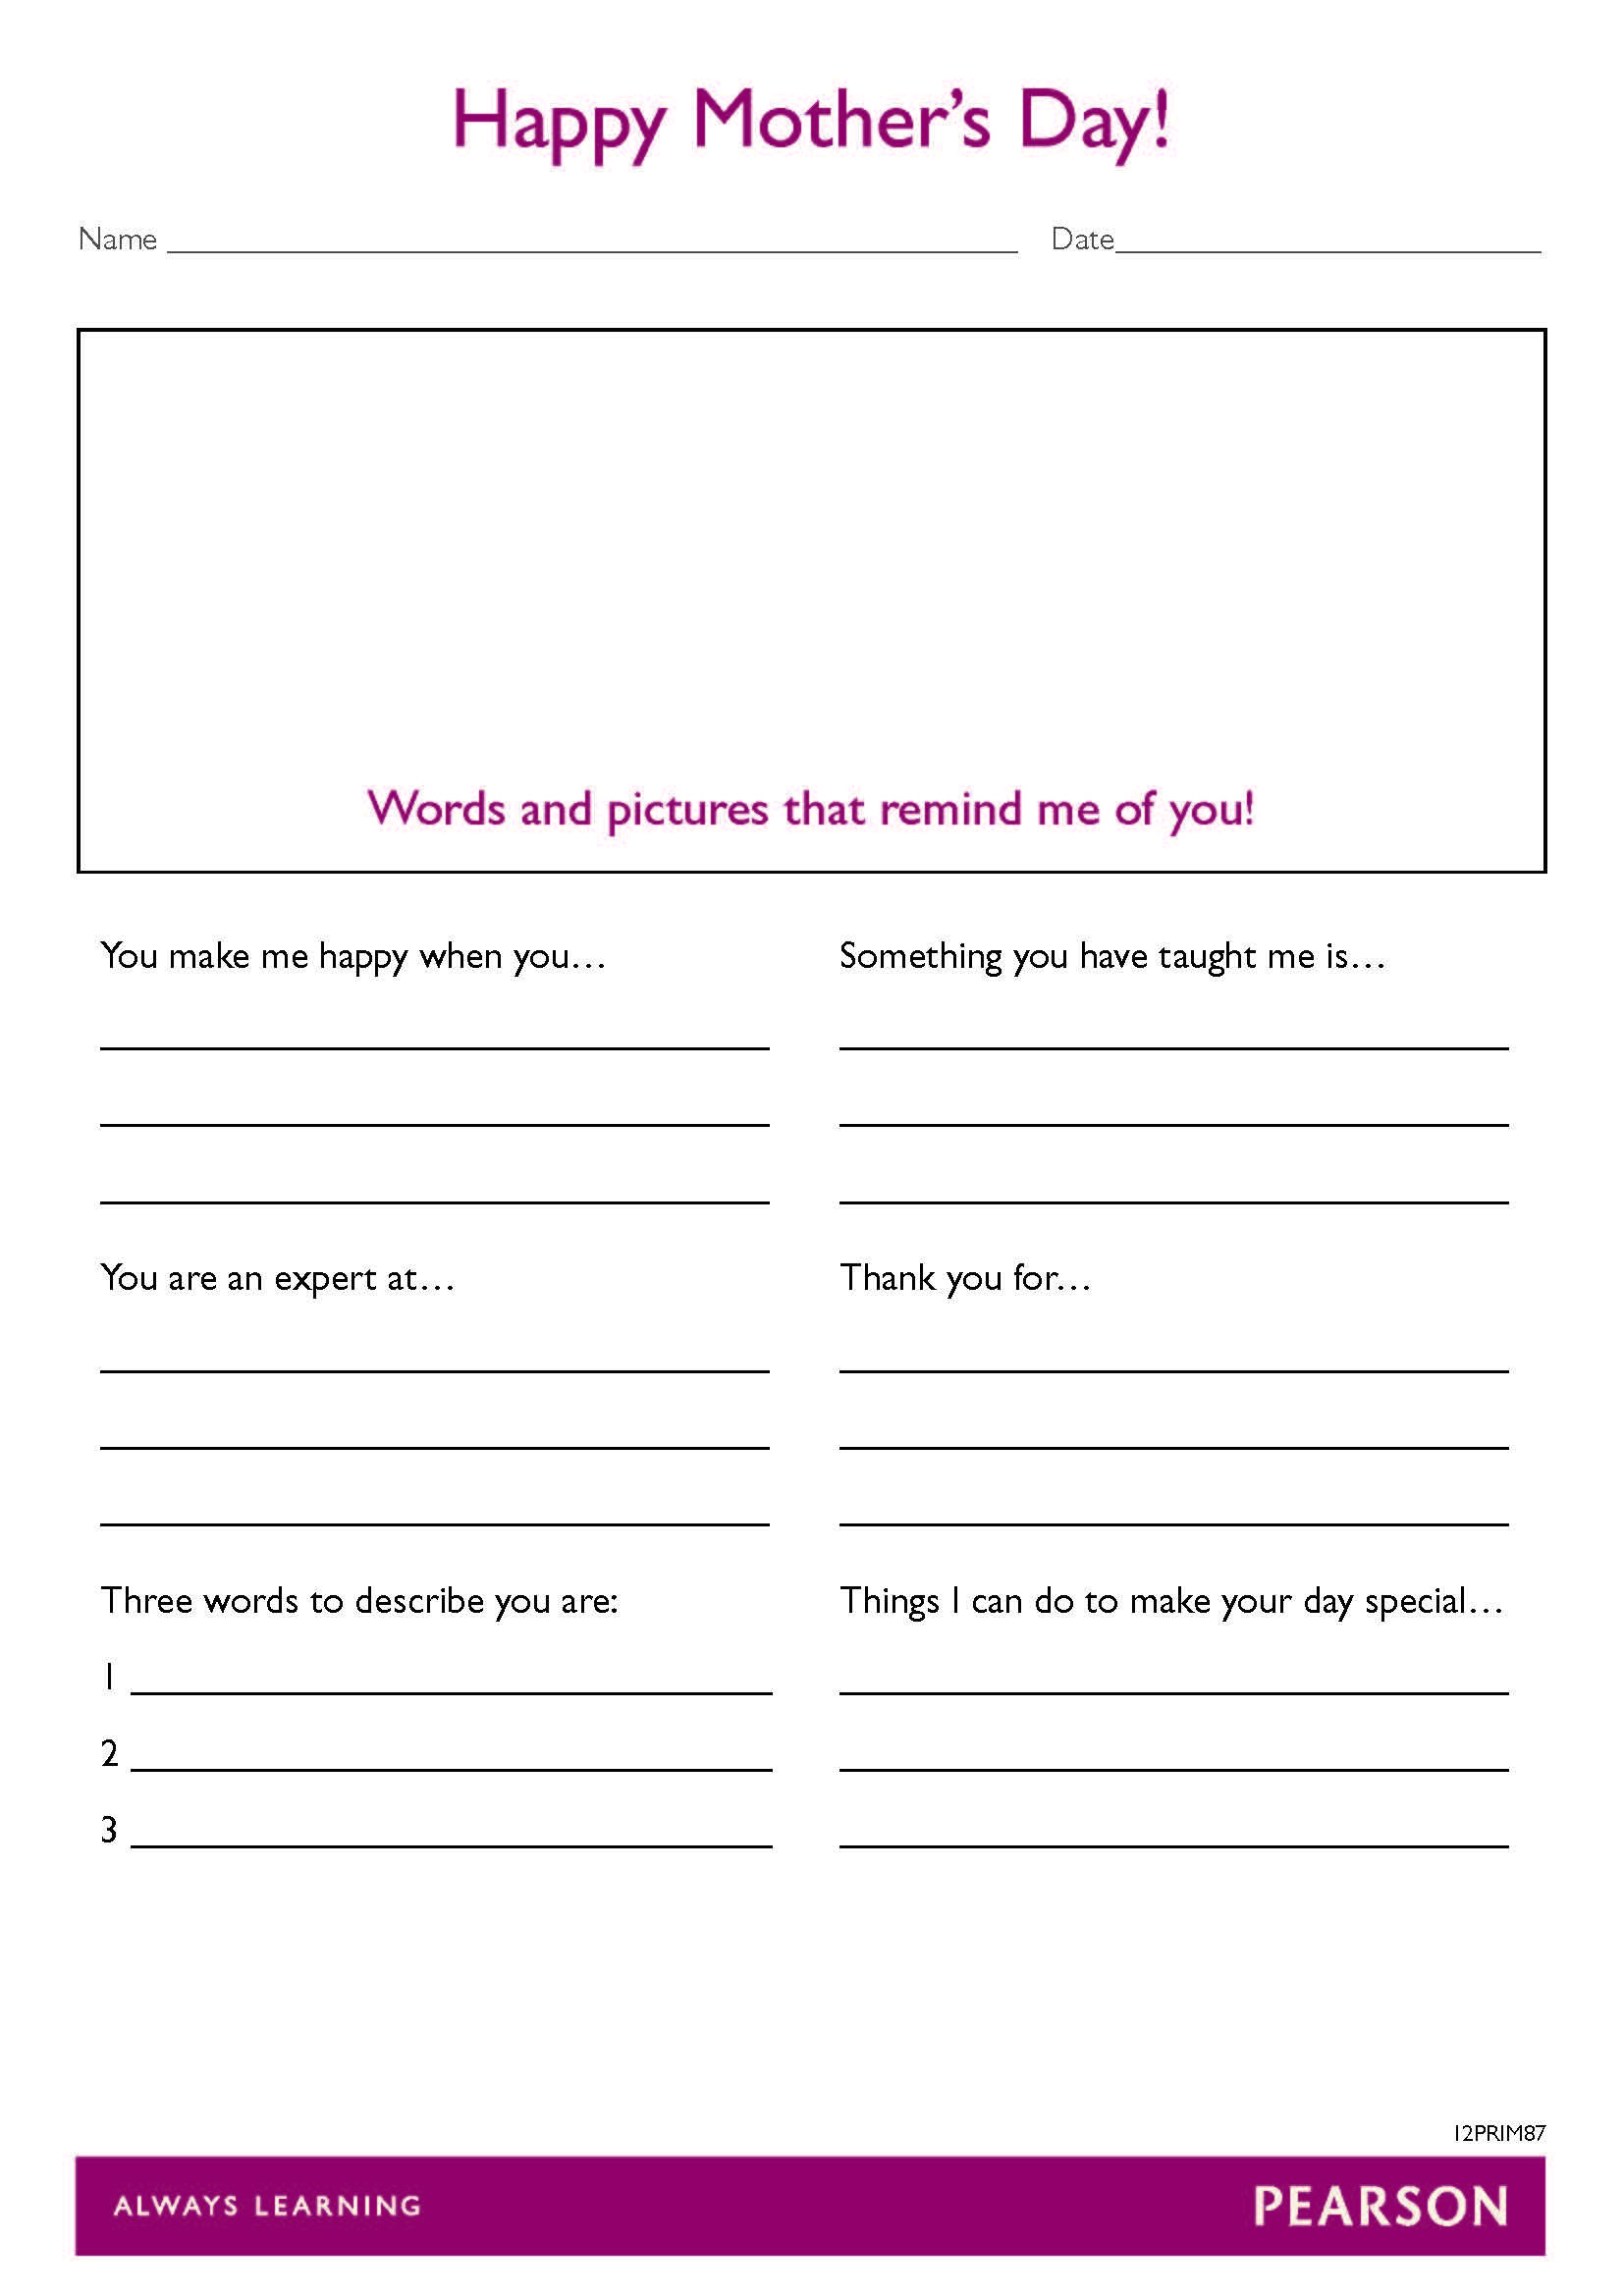 mother s day worksheet for year 3 6 students this mother s day worksheet for year 3 6 students this pdf print